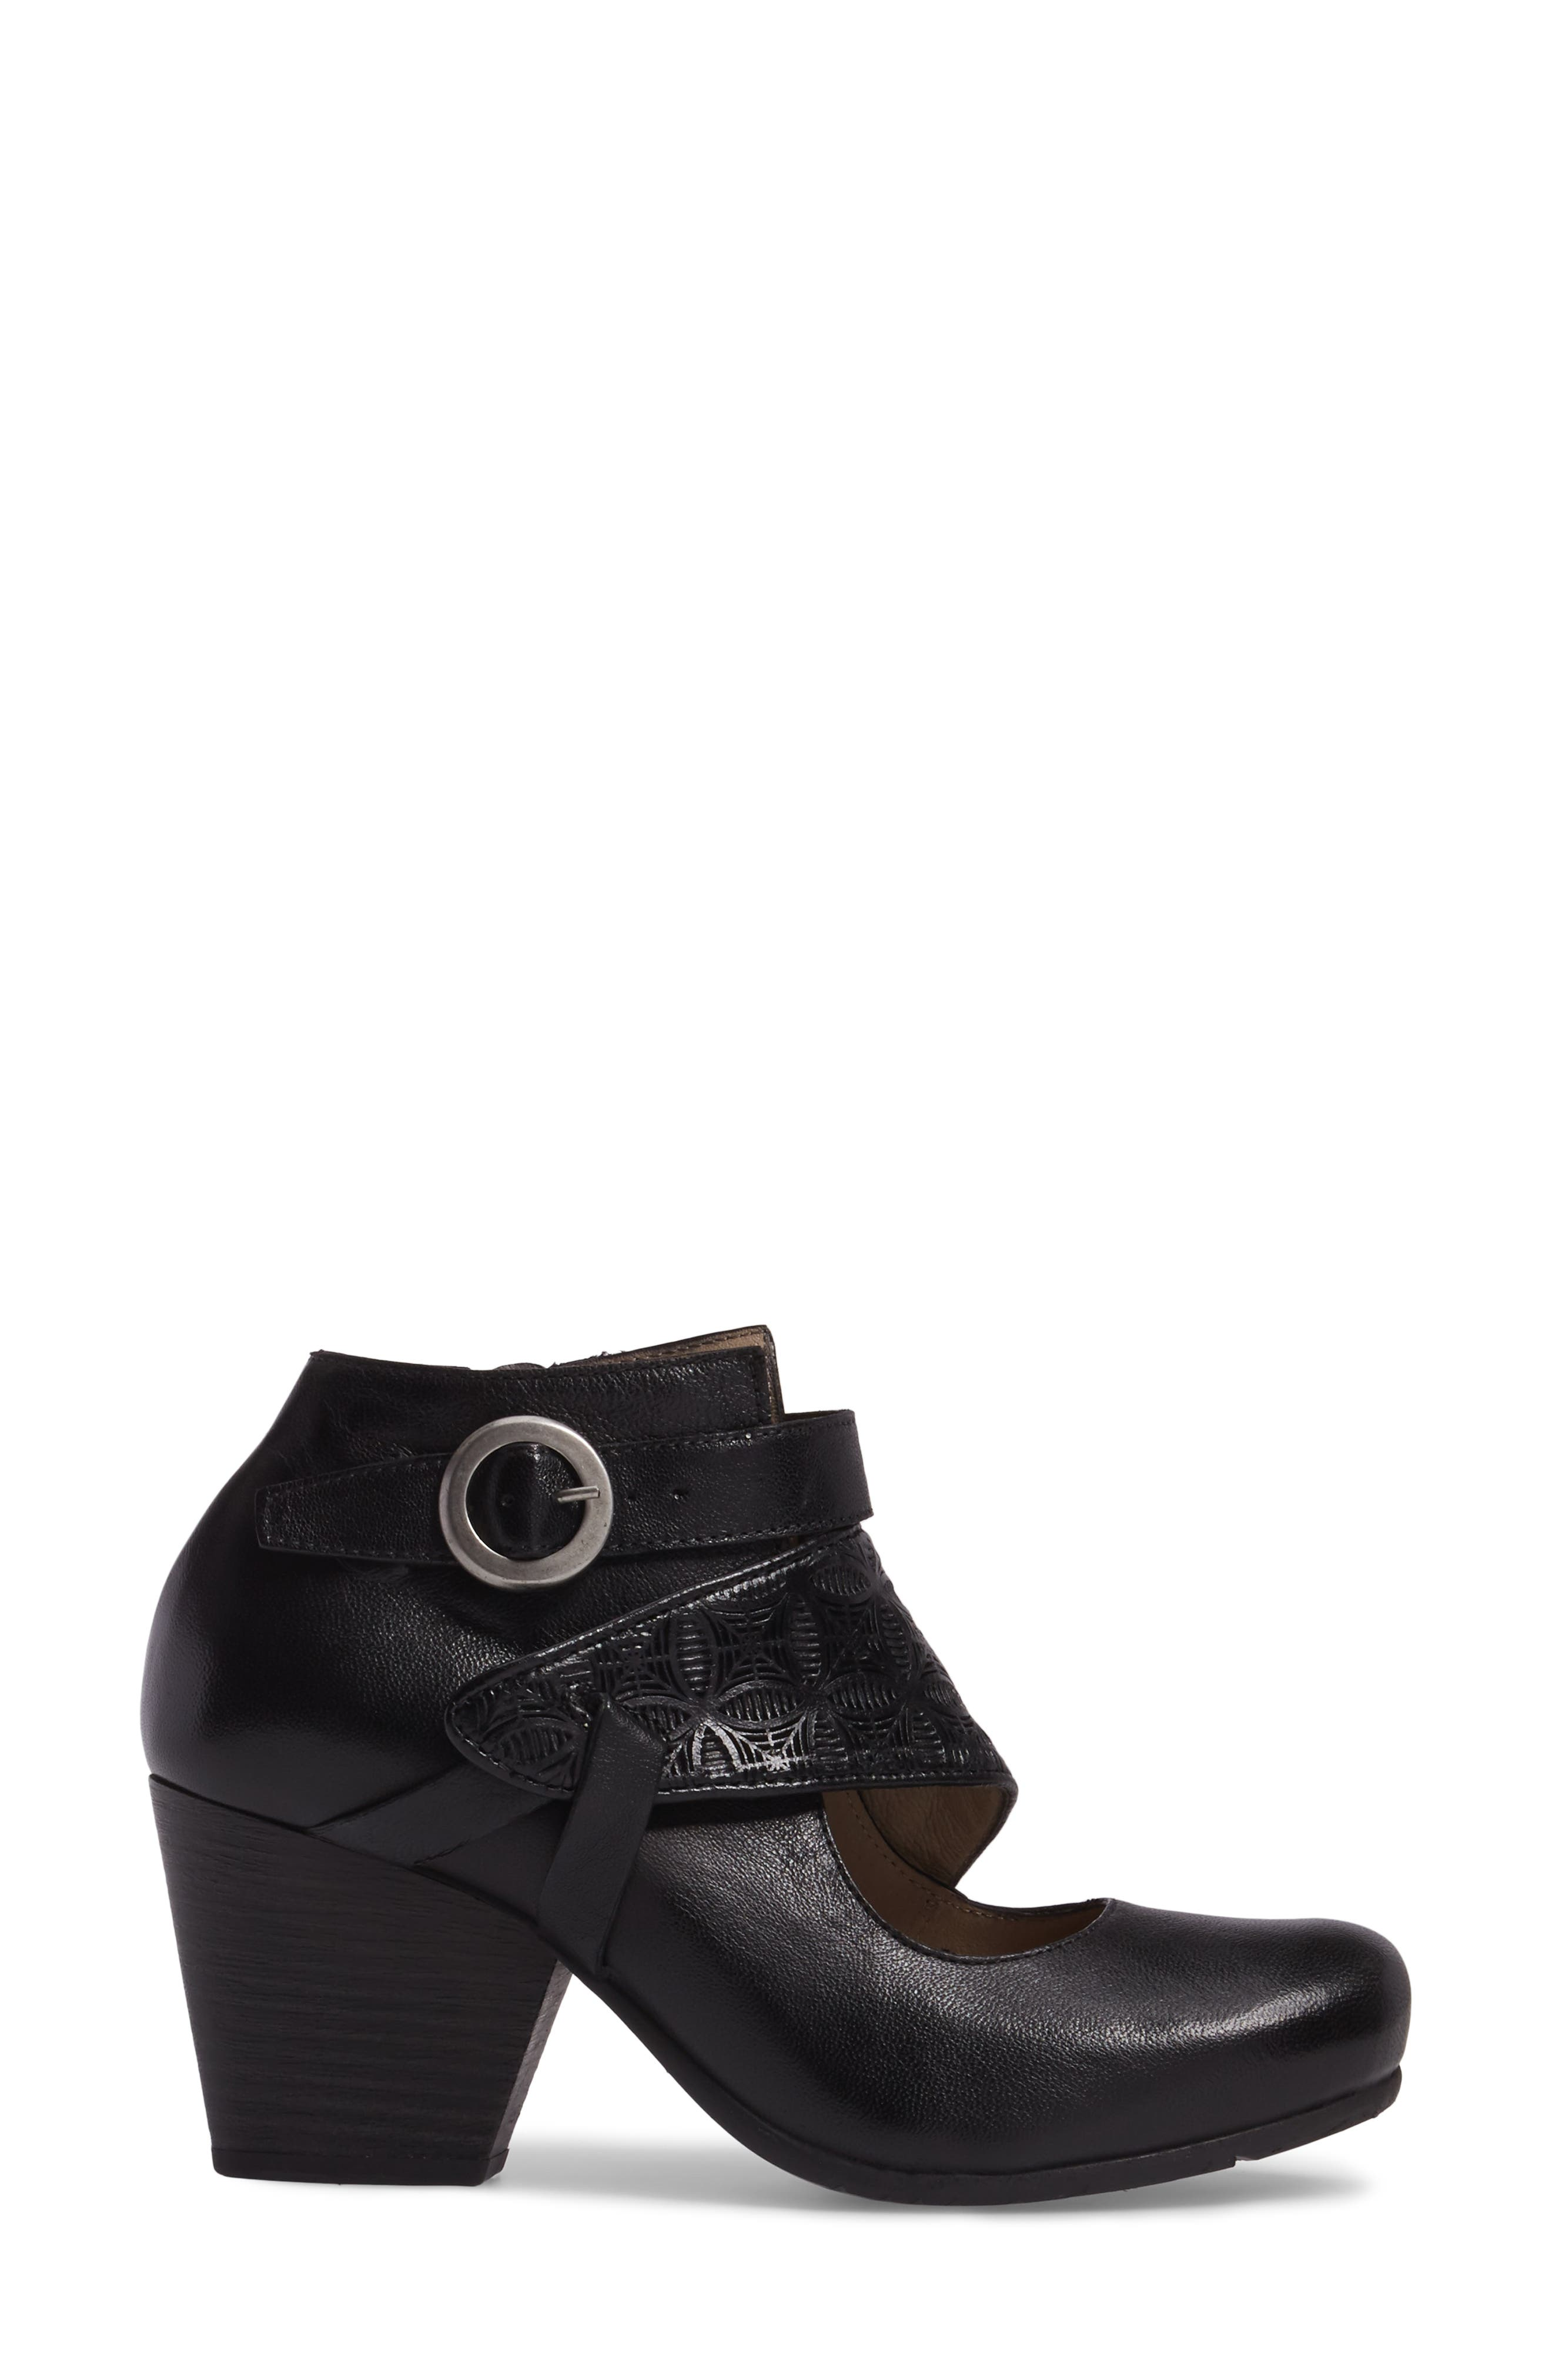 Dale Embossed Mary Jane Bootie,                             Alternate thumbnail 3, color,                             Black